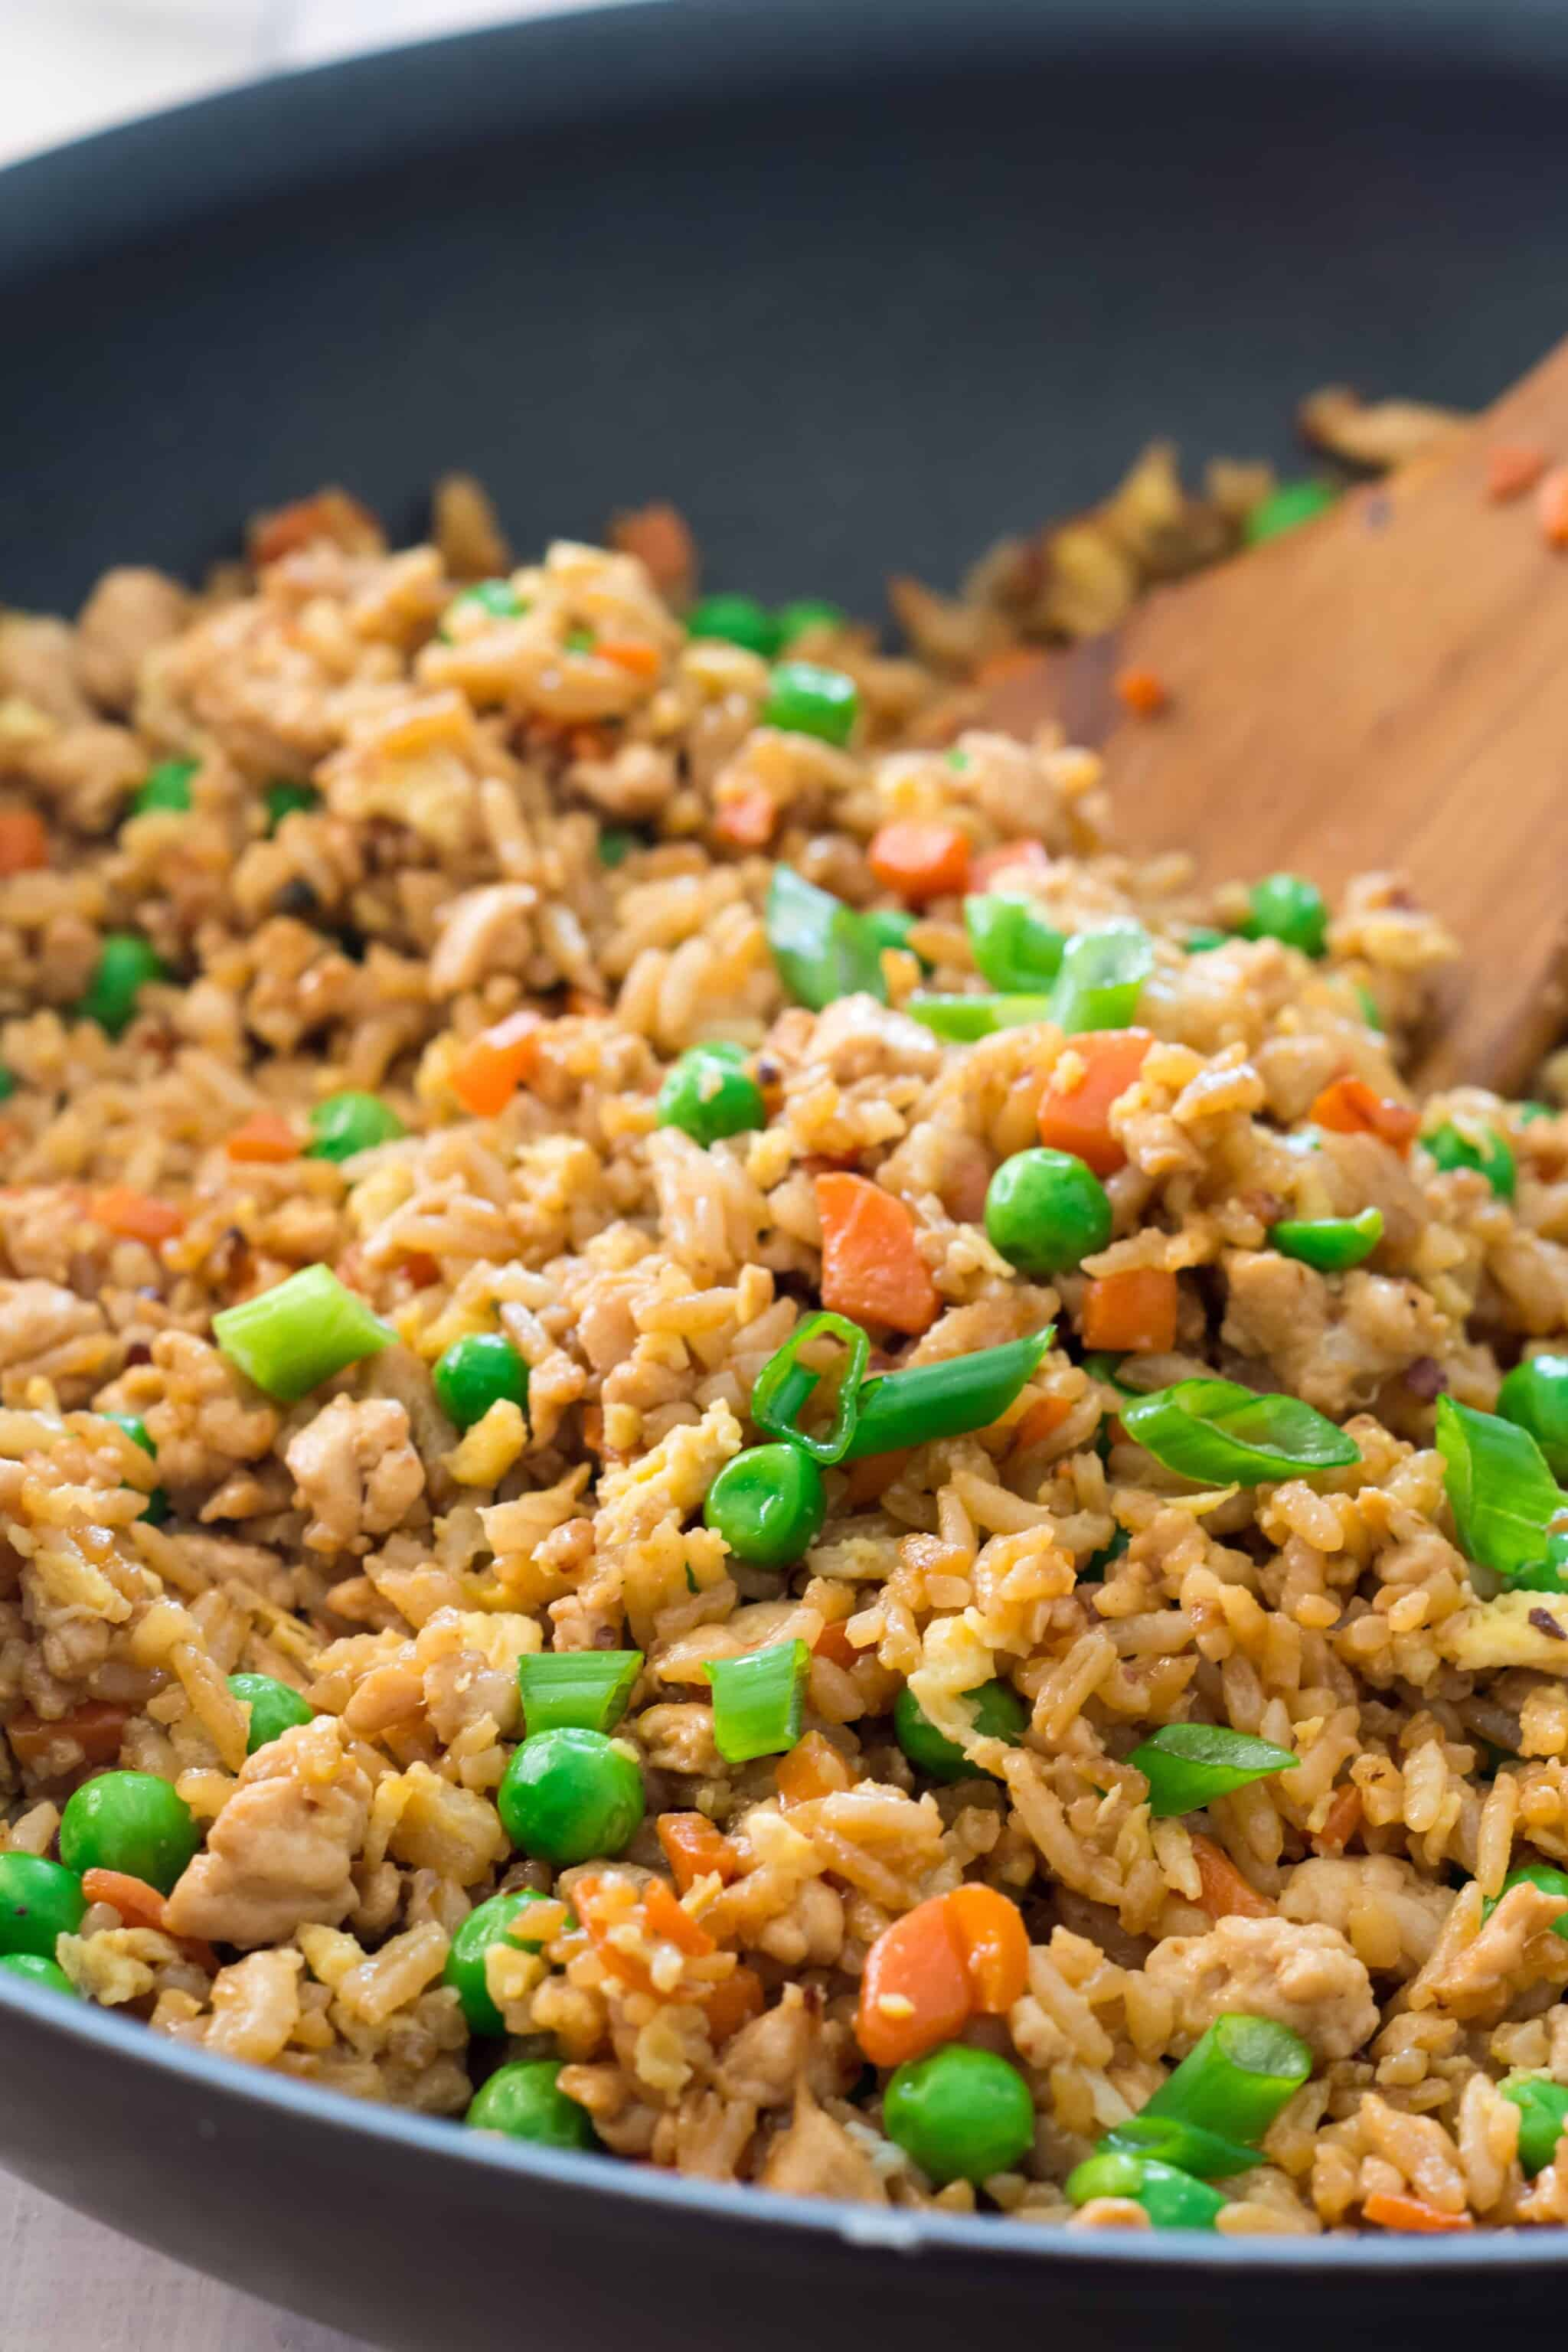 wooden spatula stirring skillet of gluten free turkey fried rice with peas, carrots, and green onions